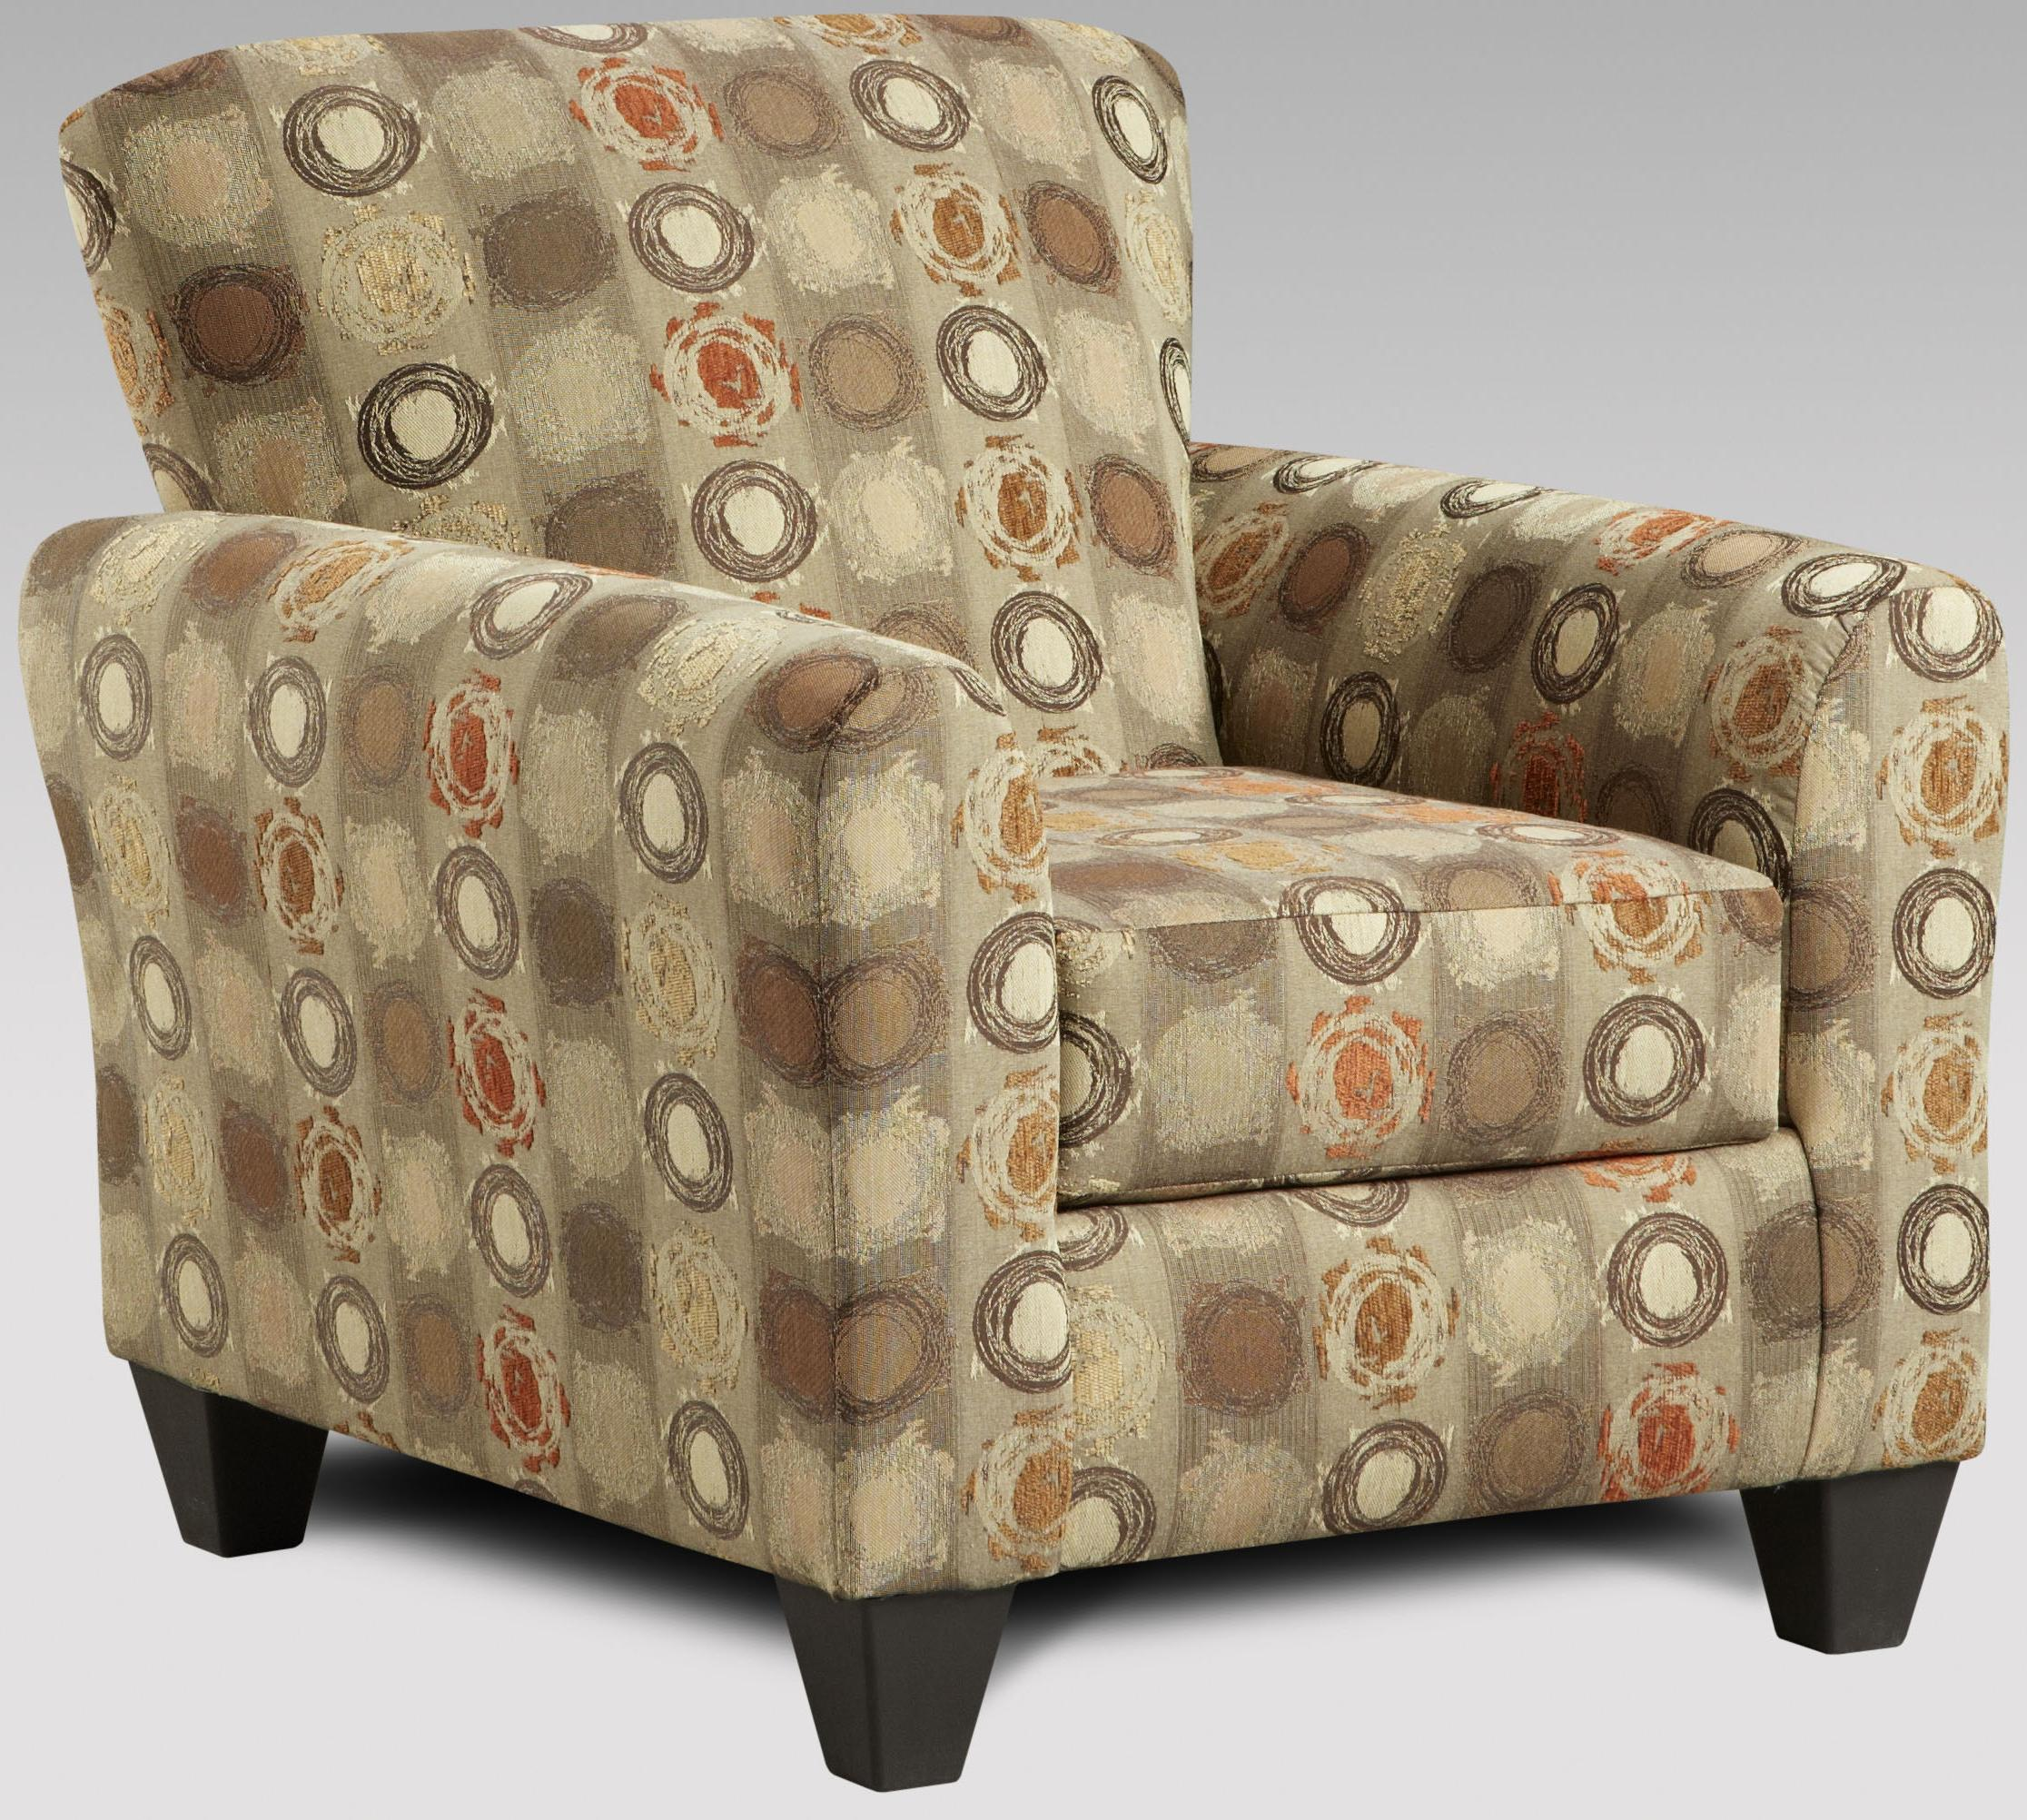 Affordable Furniture Vivid Upholstered Accent Chair